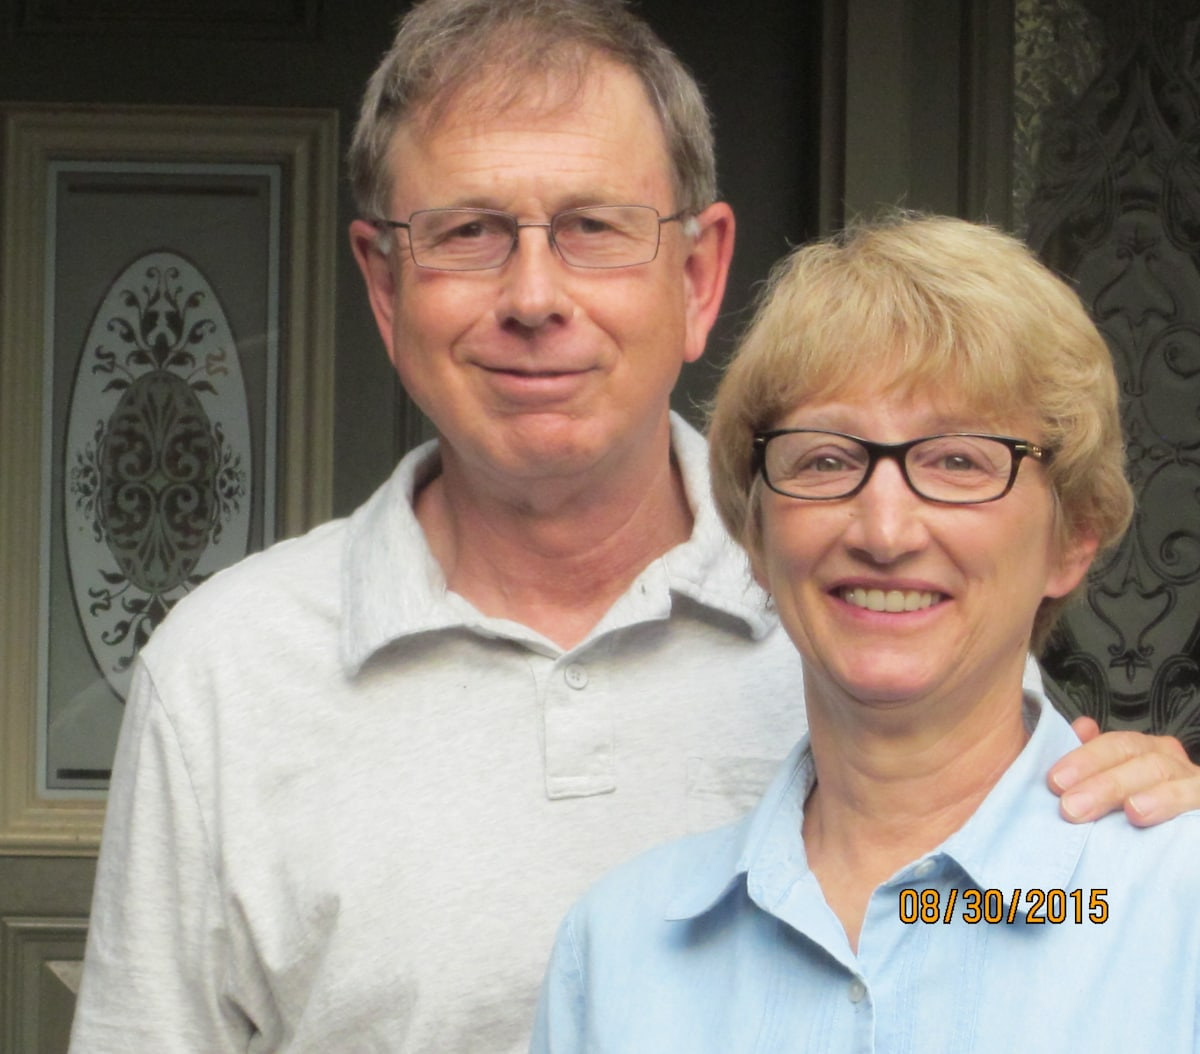 Hugh And Kathy from Elizabethtown